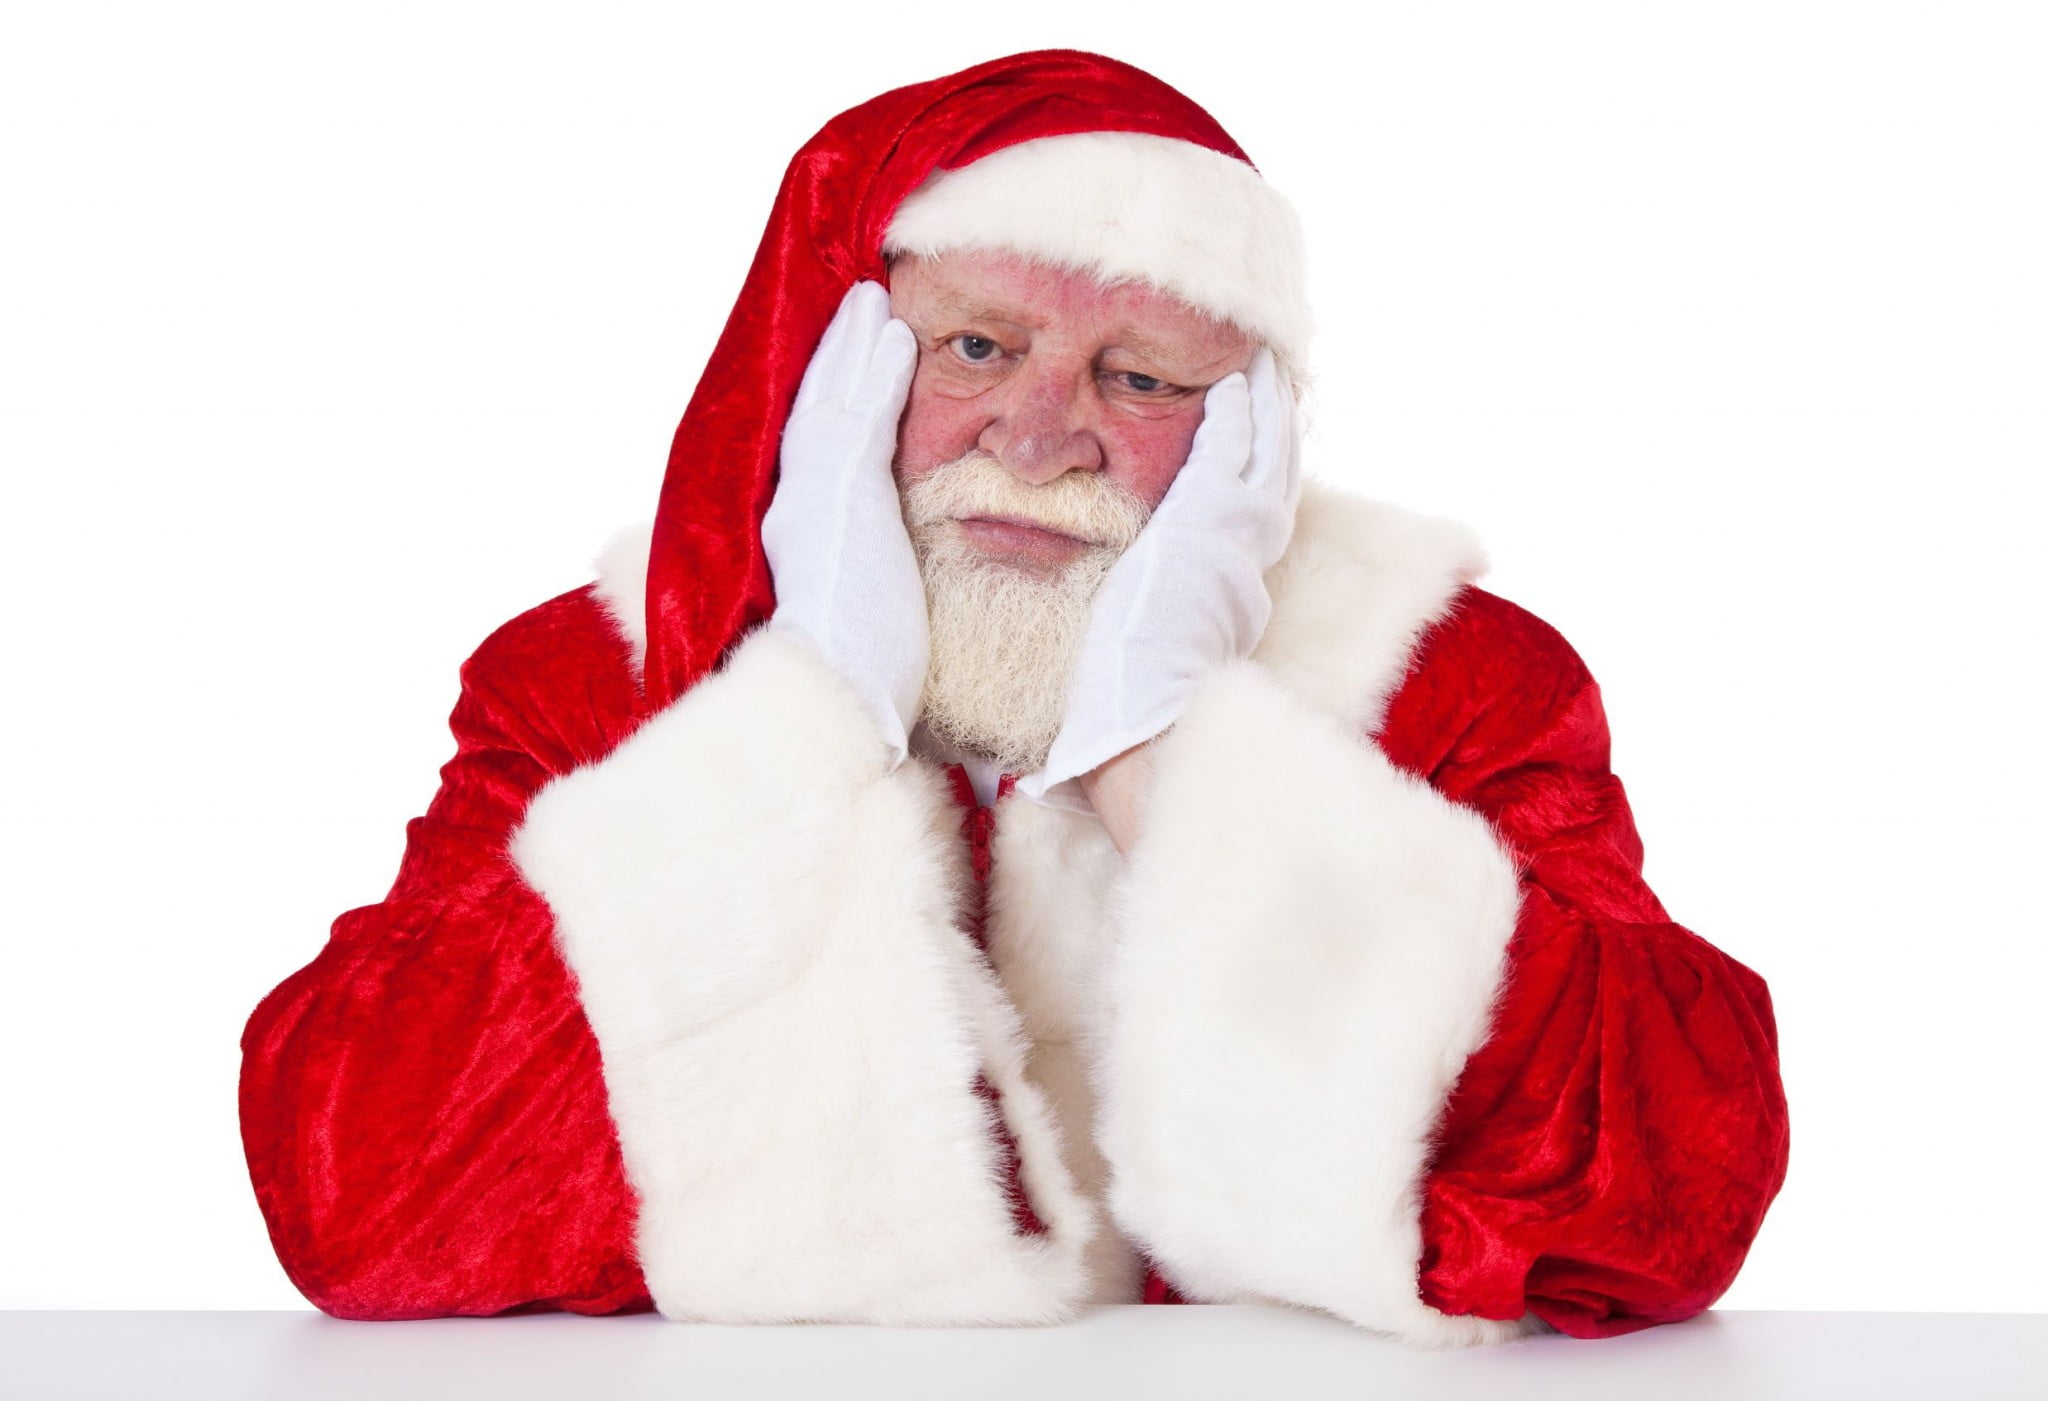 grumpy looking Santa